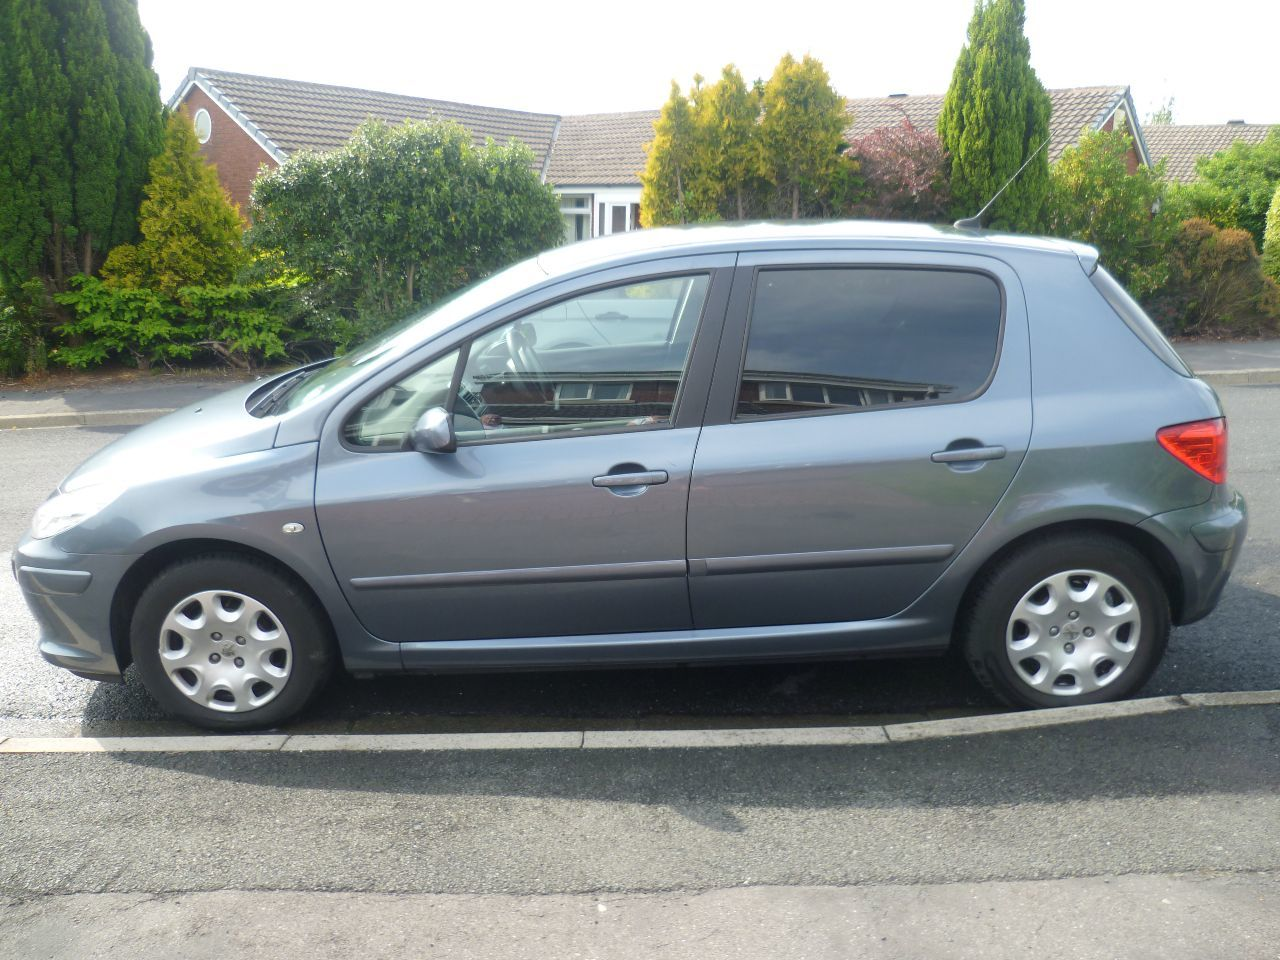 Used Peugeot 307 Cars, Second Hand Peugeot 307